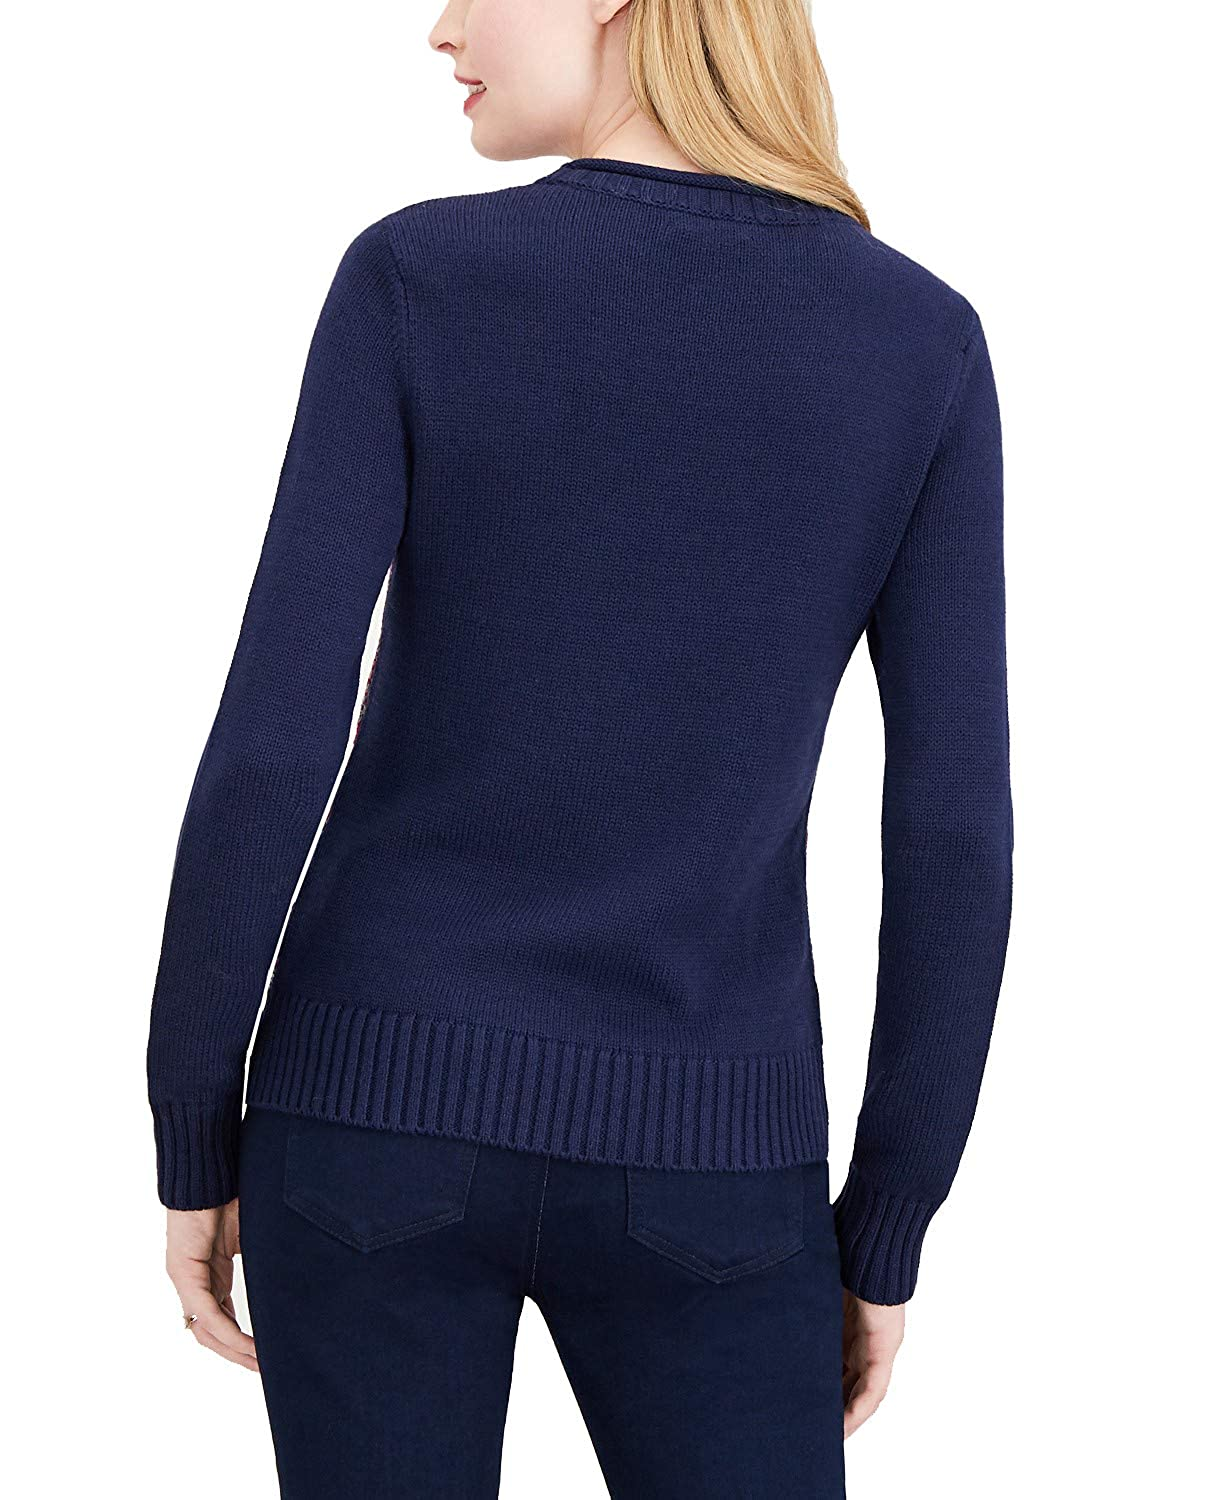 Small Blue Notte Maison Jules Womens Striped Crew-Neck Sweater